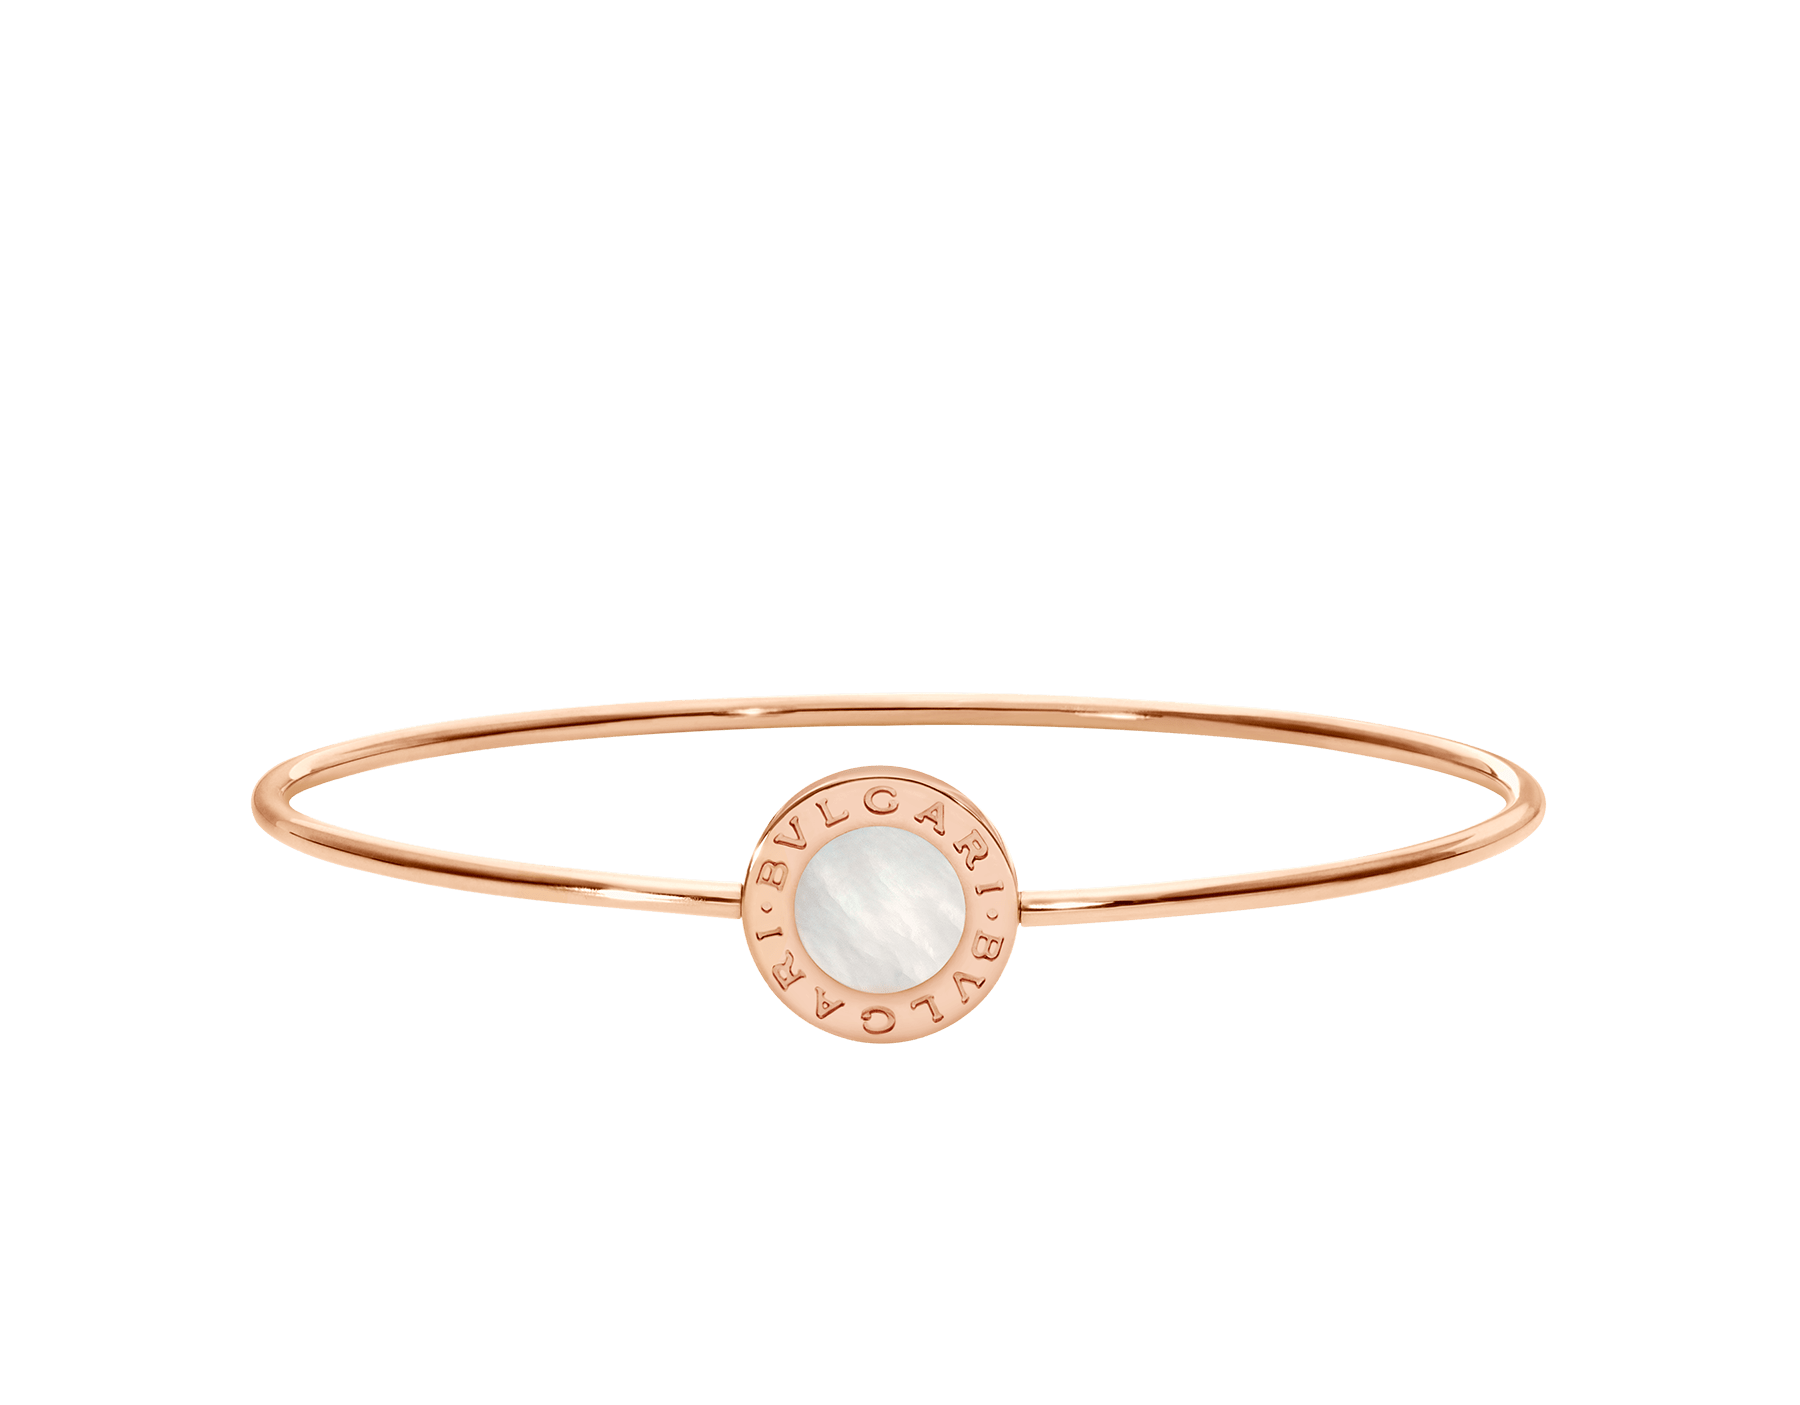 BVLGARI BVLGARI 18 kt rose gold bracelet set with mother-of-pearl element BR858624 image 2